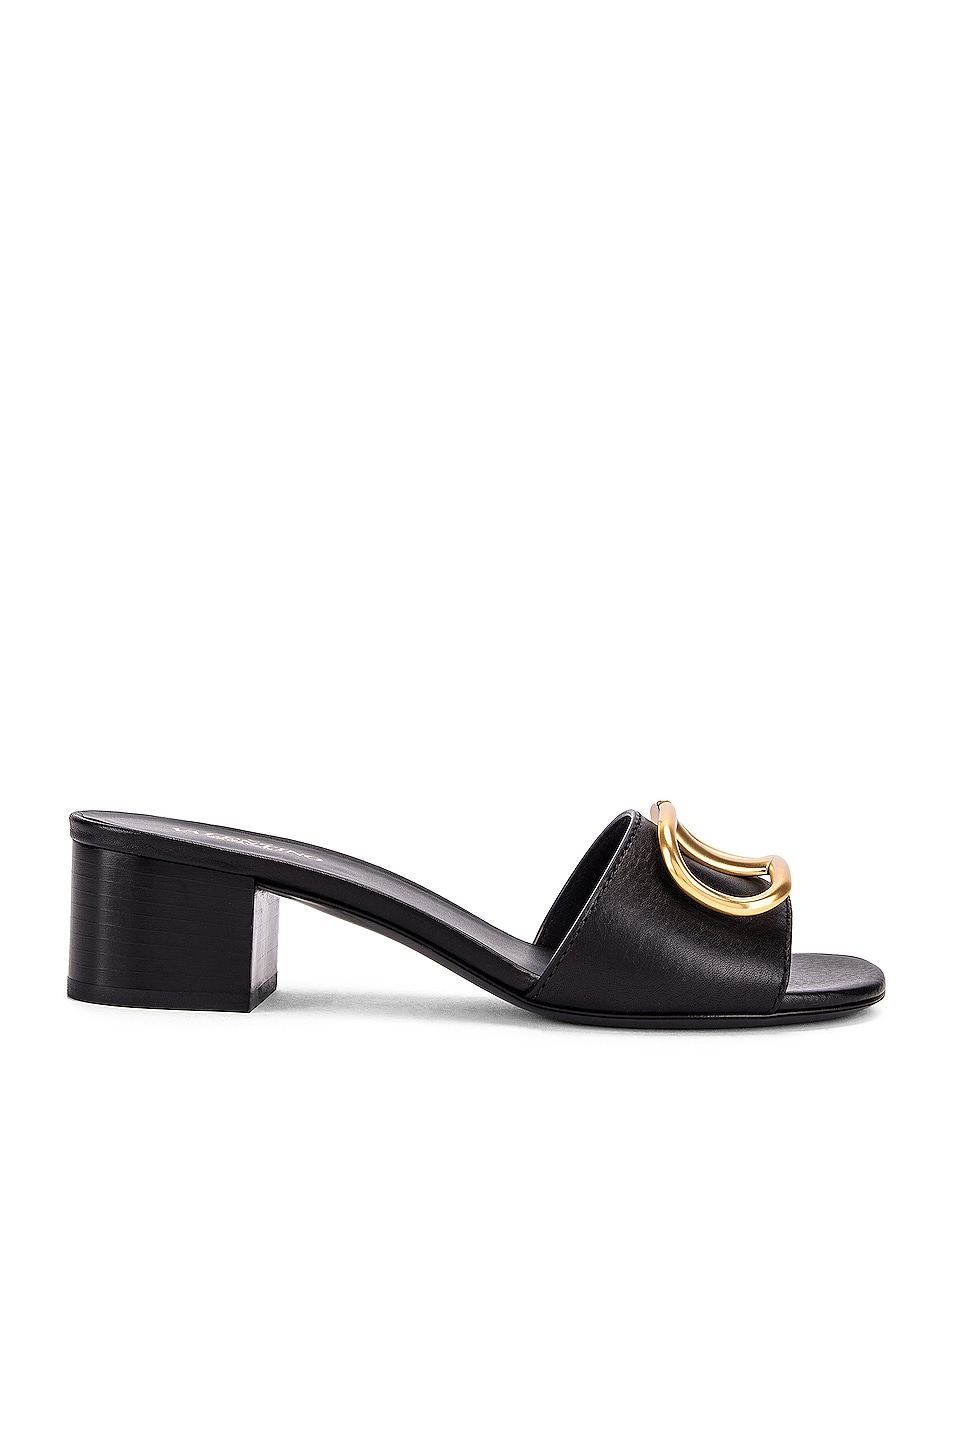 Image 1 of Valentino VLogo Slides in Black